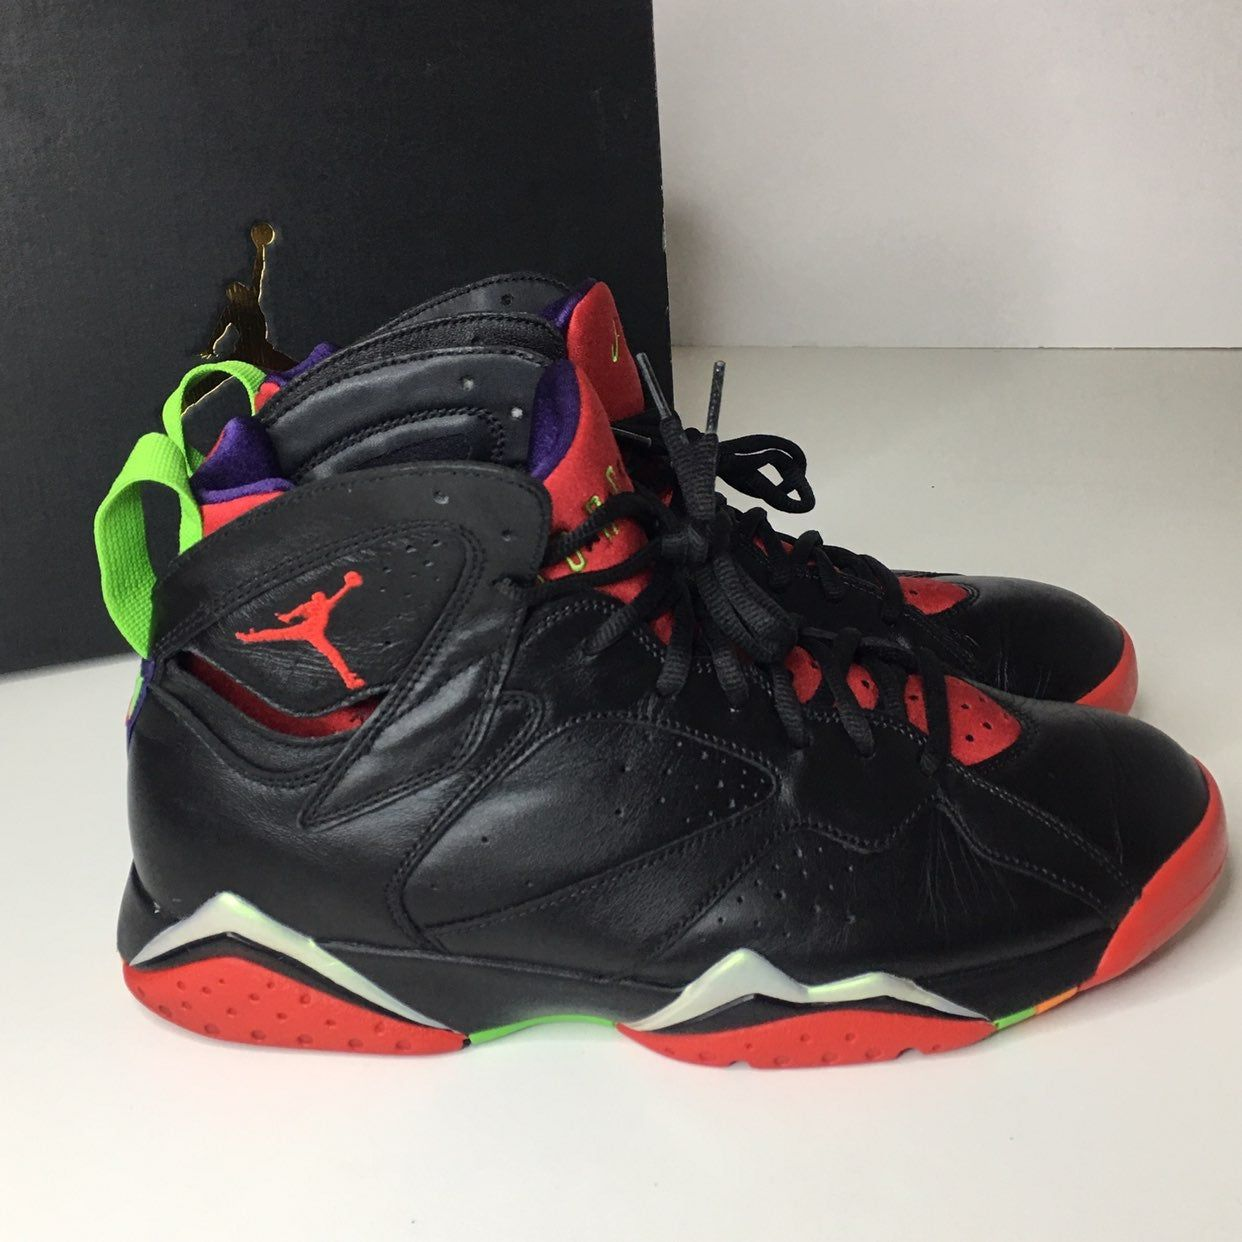 Air Jordan 7 Vii Retro Marvin The Martian Black Colorway With